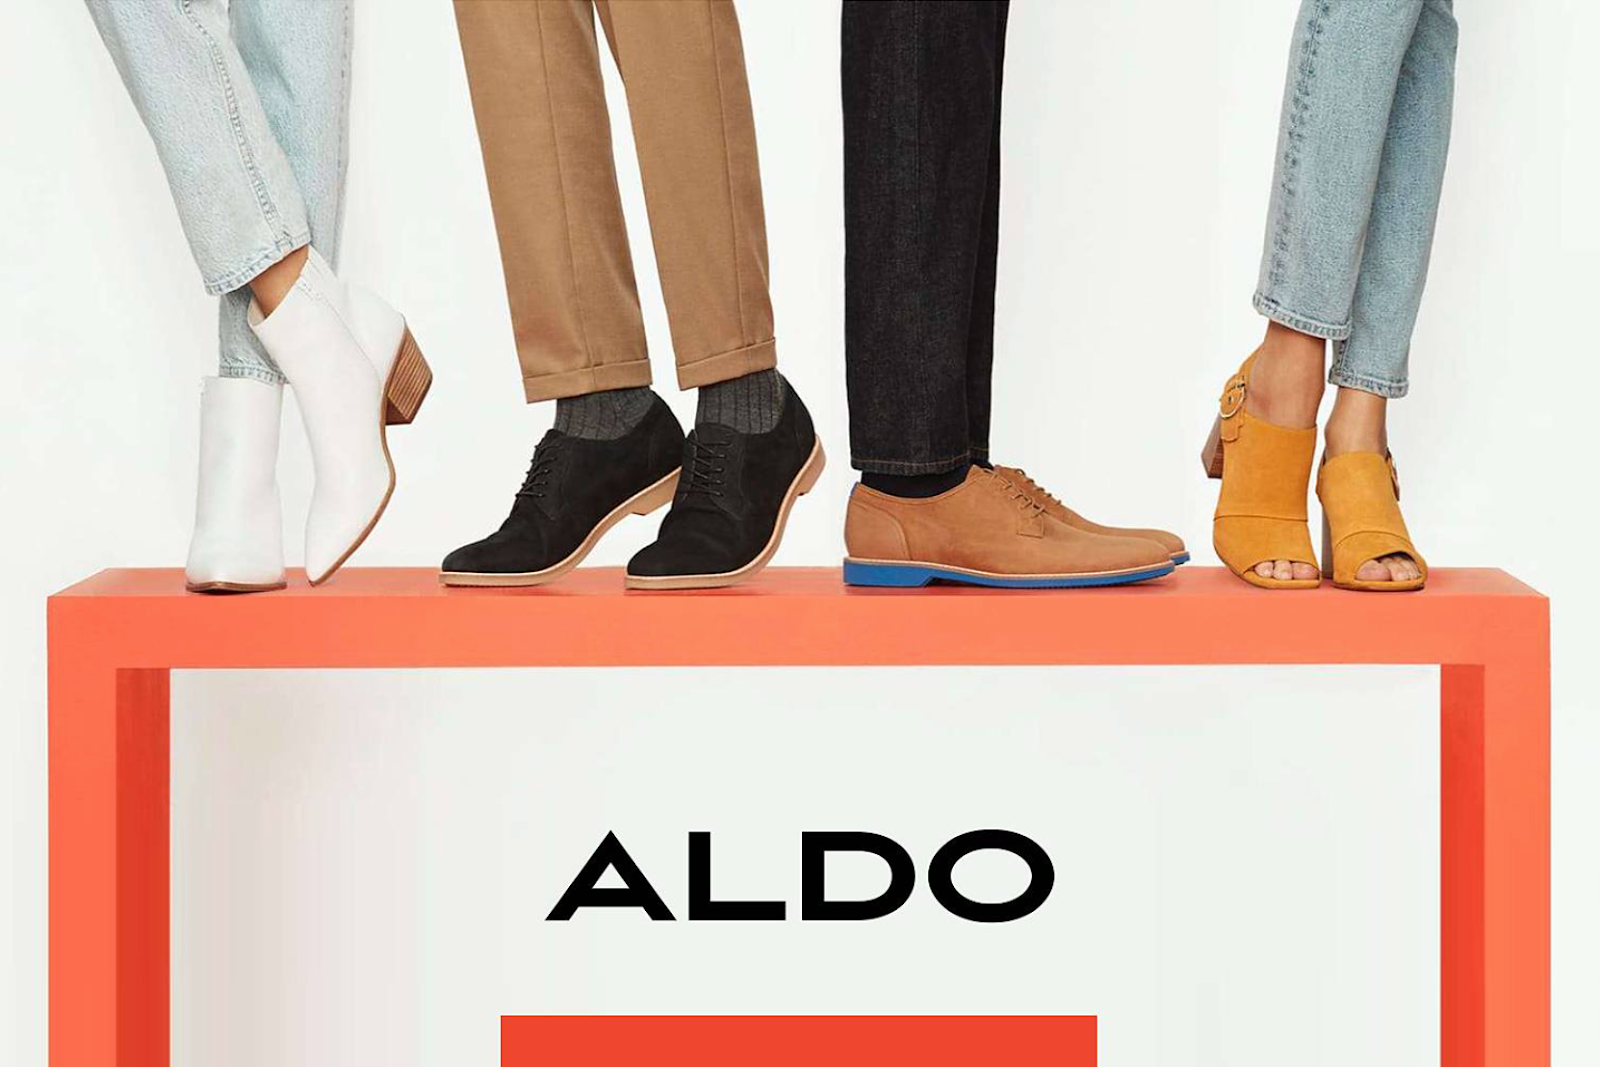 Adlo-Man-Women-Shoes-Footwear-Sales